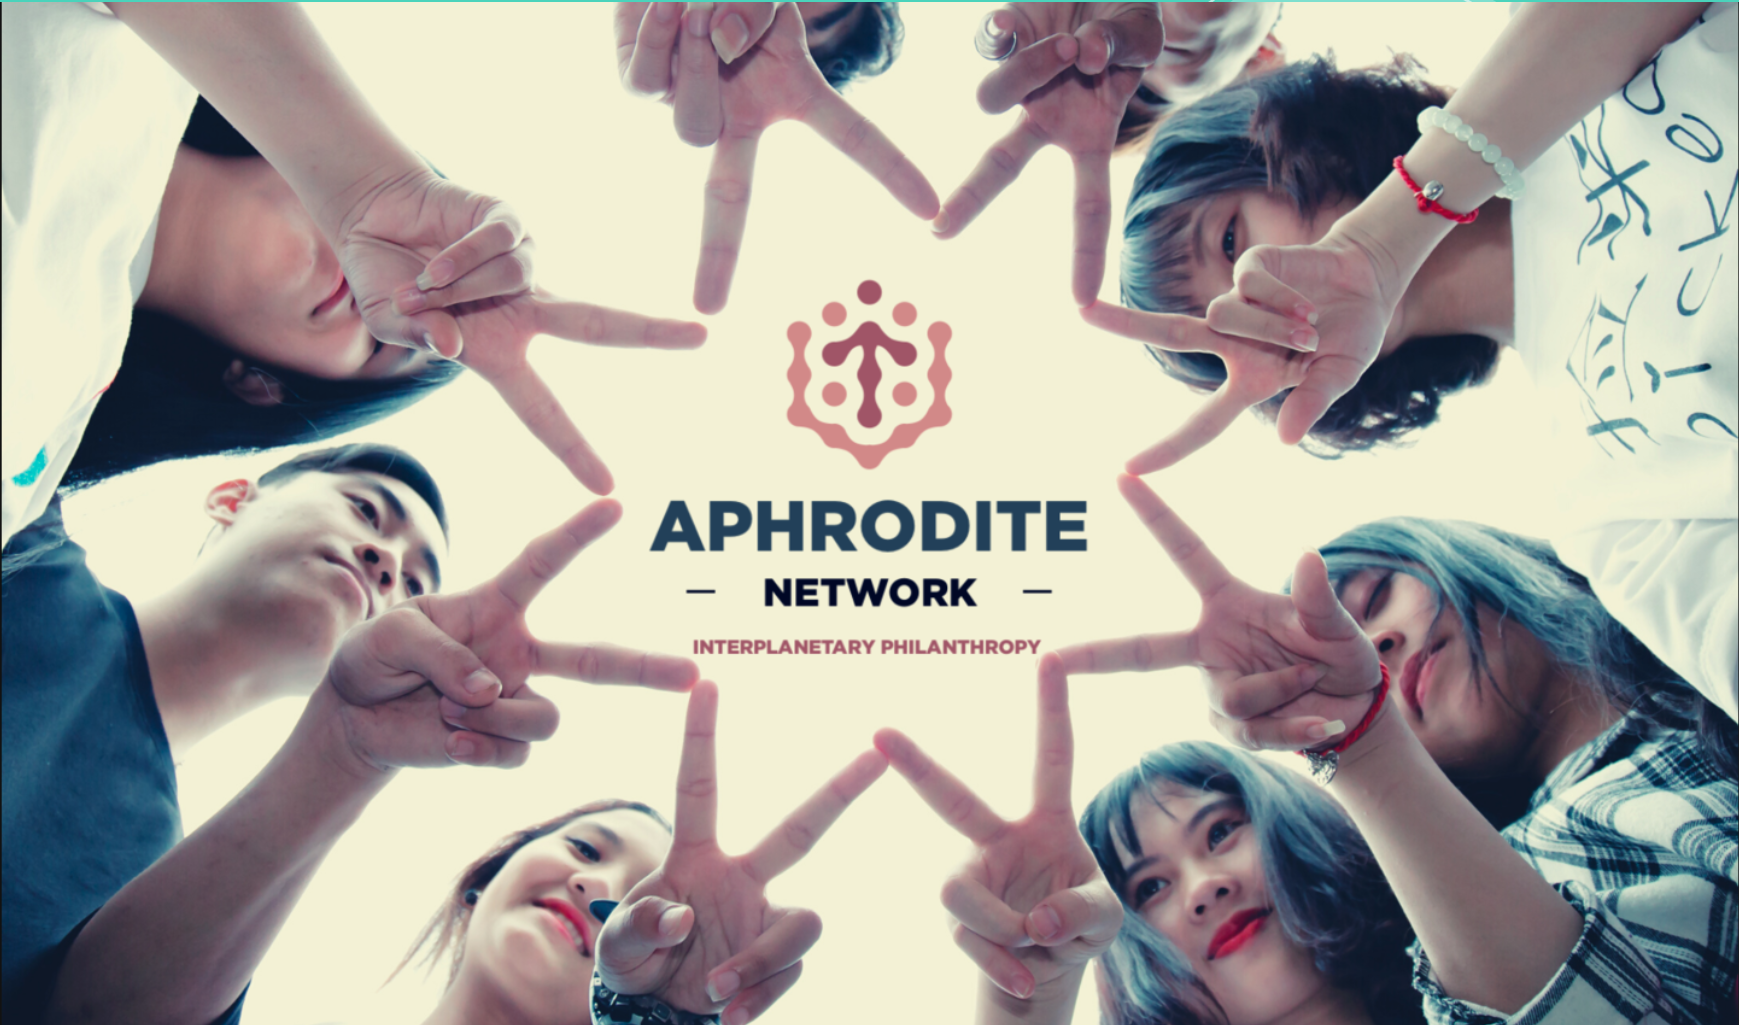 Aphrodite Network - Interplanetary Philanthropy